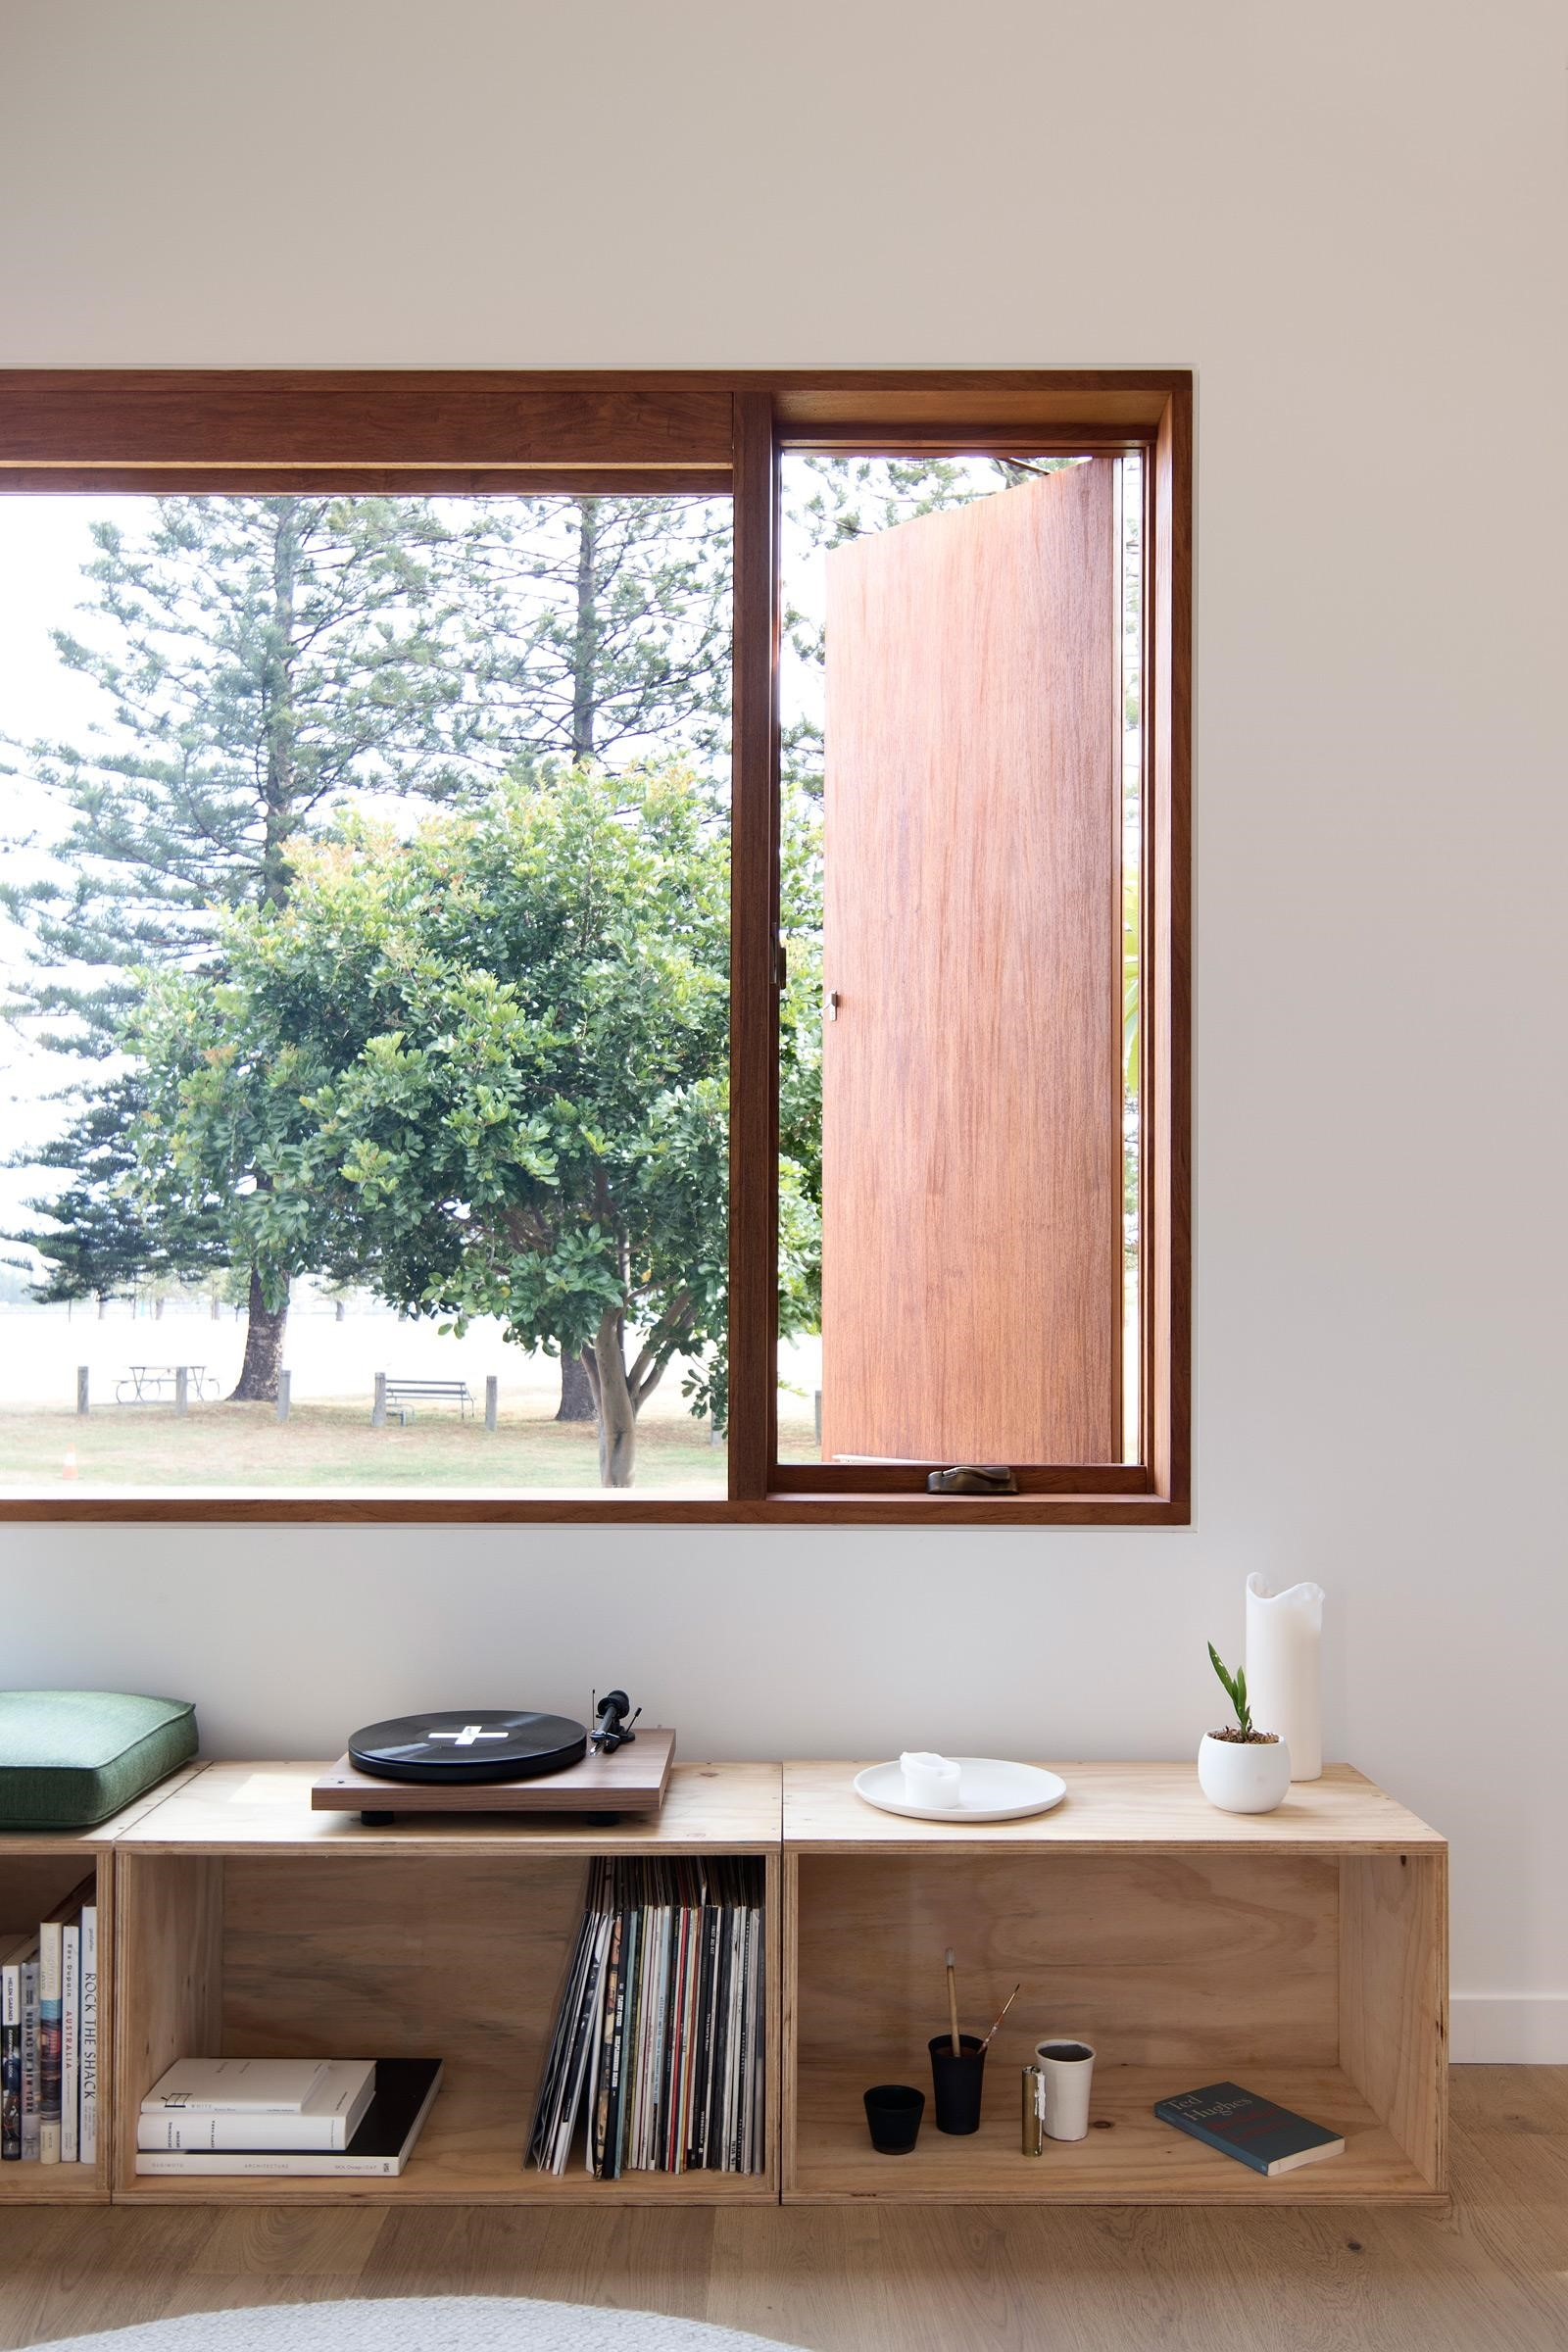 Gallery Of The Three Piece House By Trias Studio Local Australian Residential Architecture & Interiors Sydney, Nsw Image 8